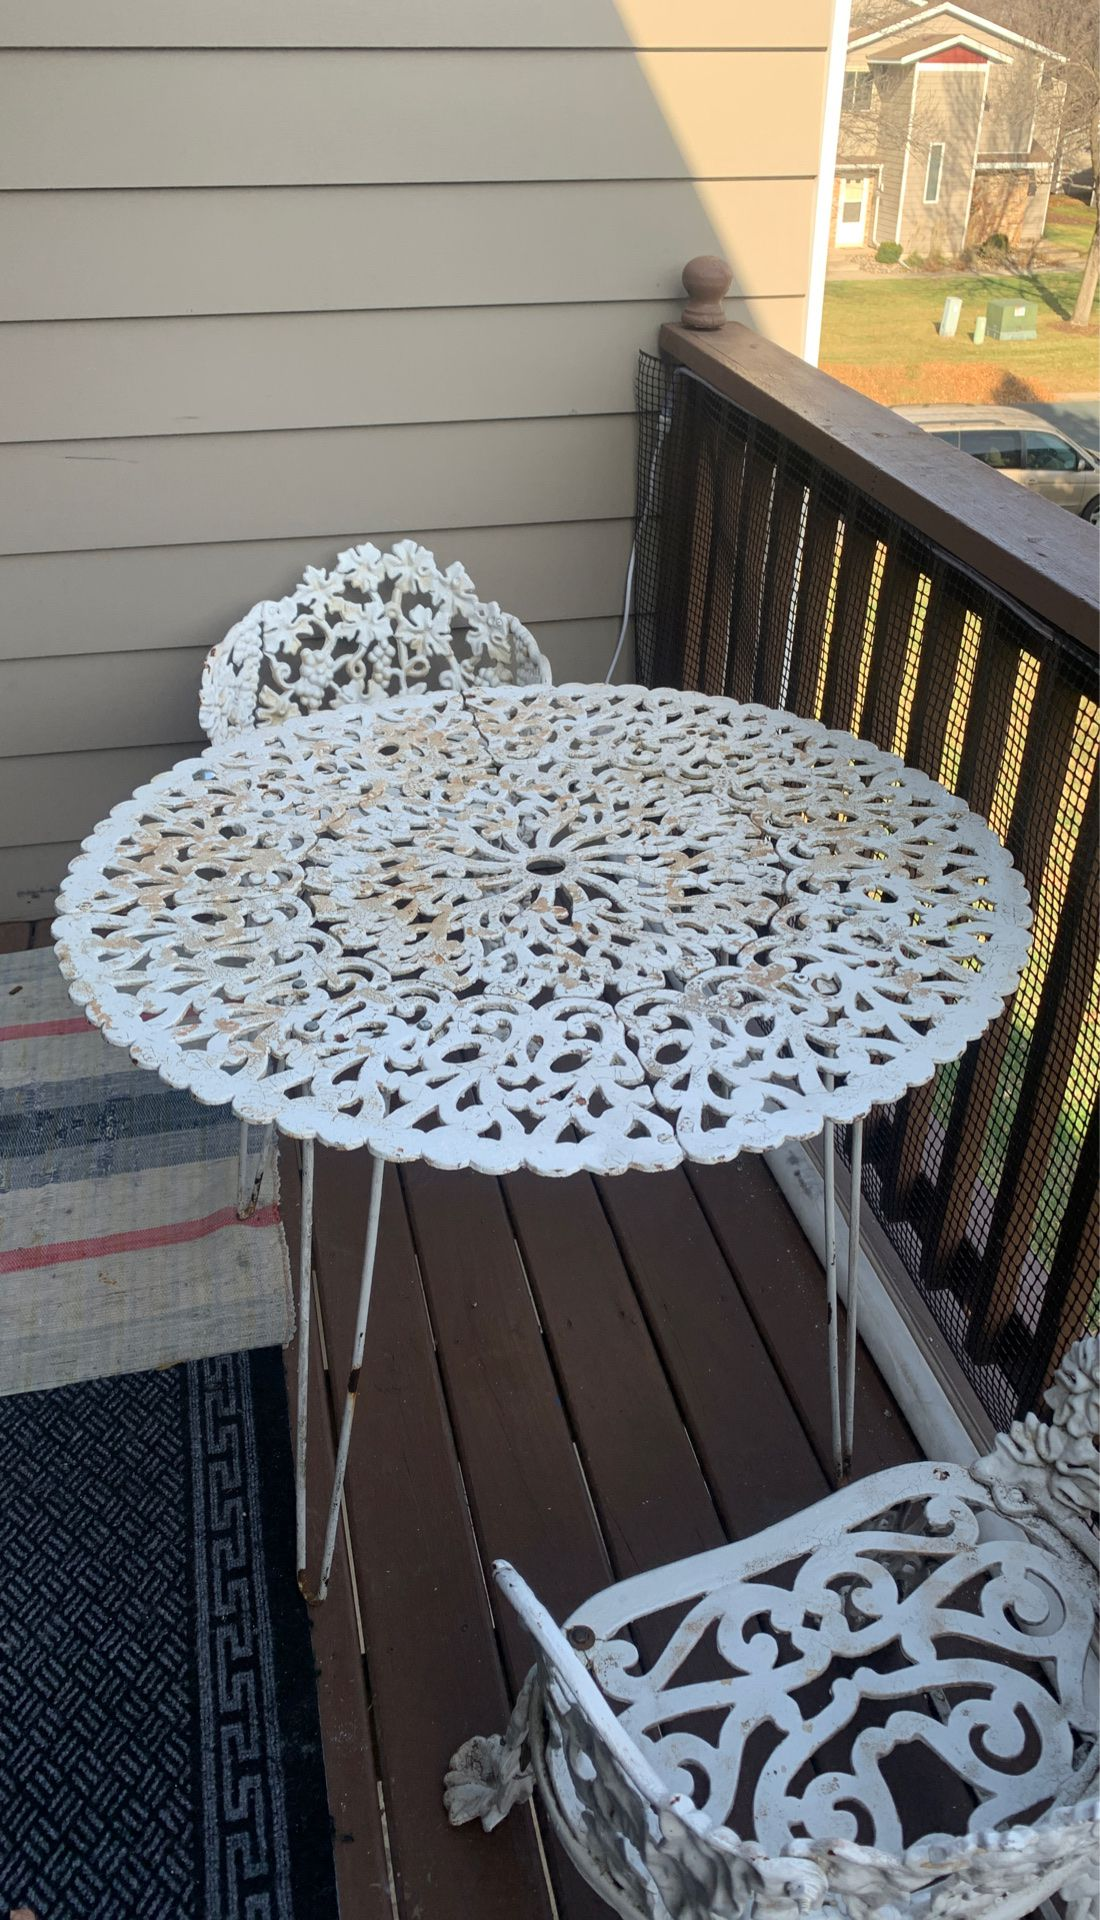 Cast iron Garden Table and chairs set